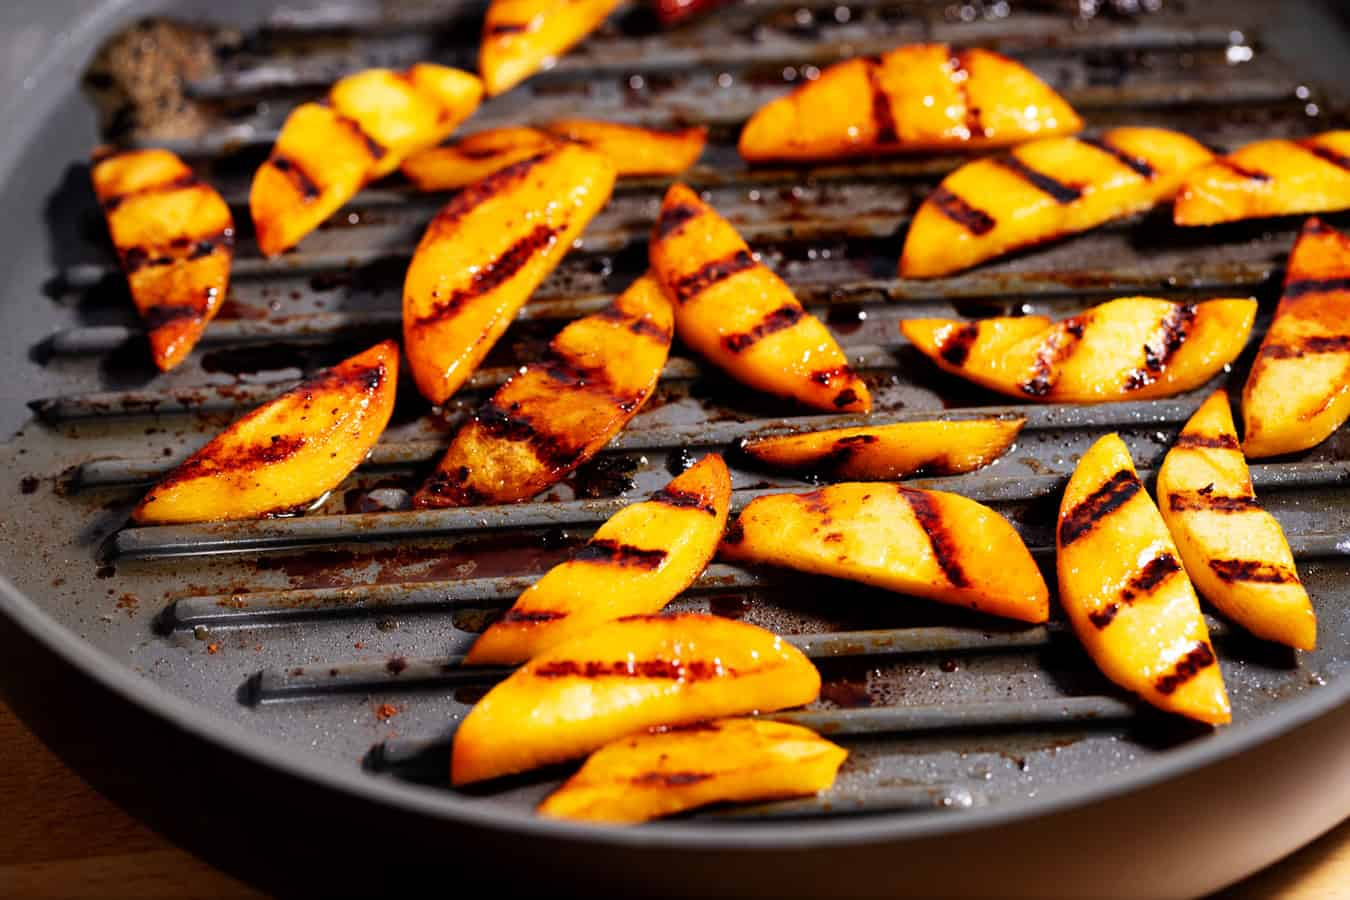 pan of grilled peach slices